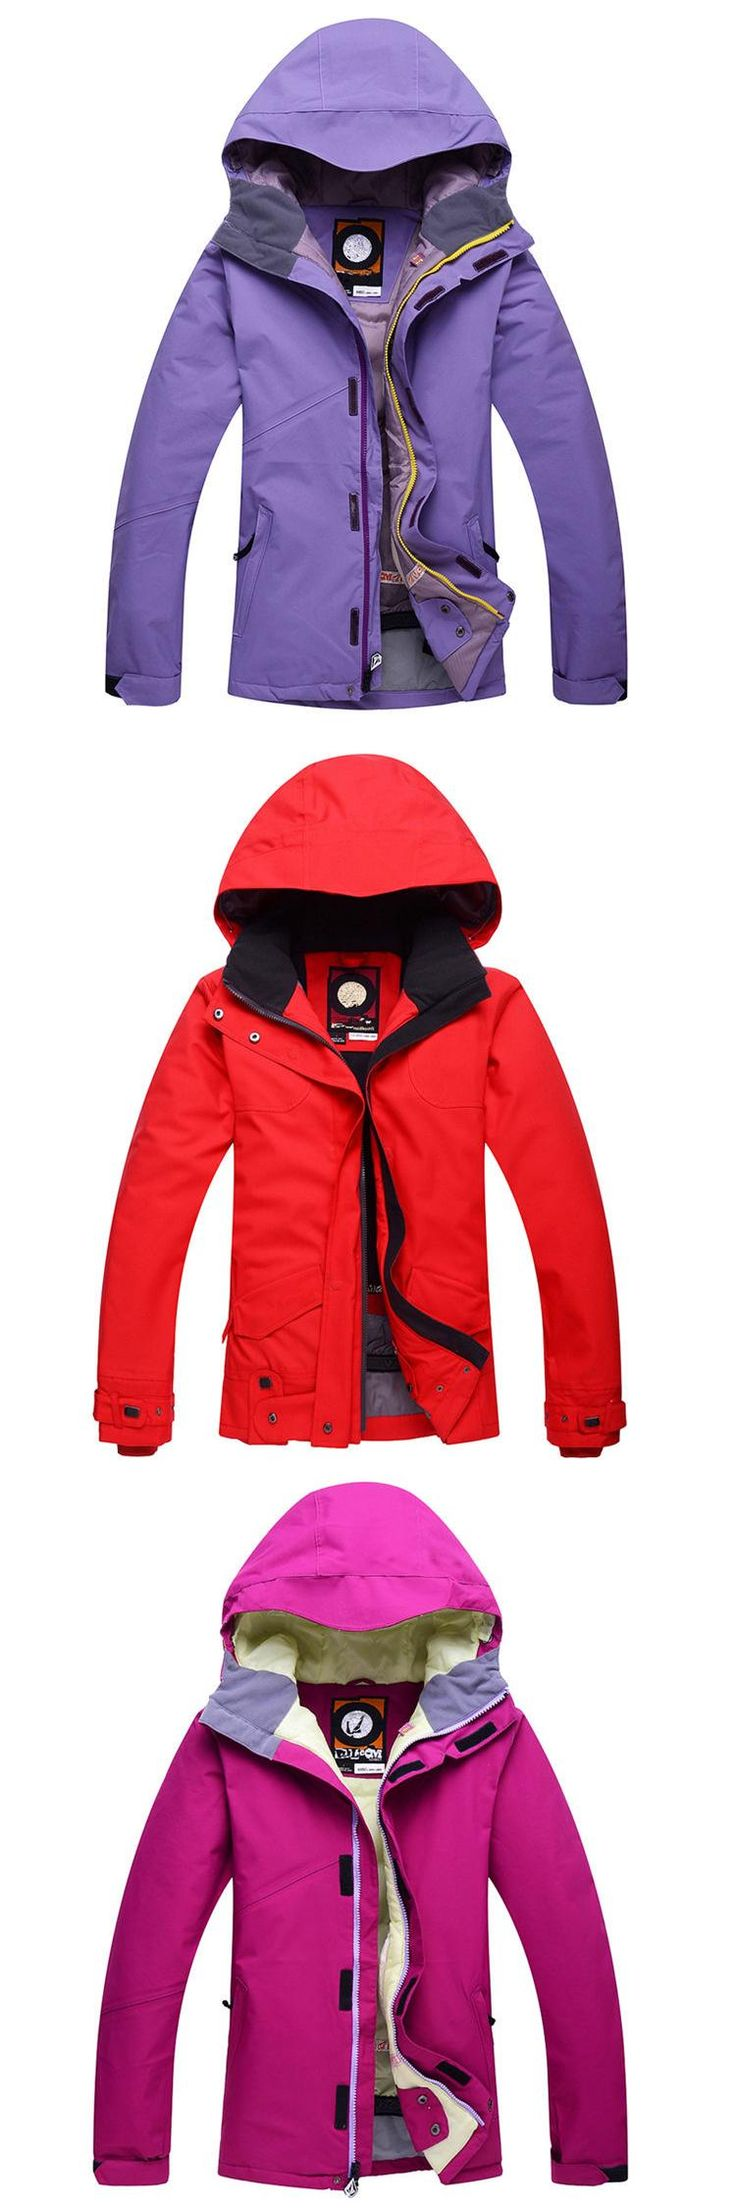 [Visit to Buy] Women Cheap Snow Jacket Ski Snowboard Clothing -30 Warm Coat Ski suit Jackets outdoor sports custome Red purple rose pure color #Advertisement